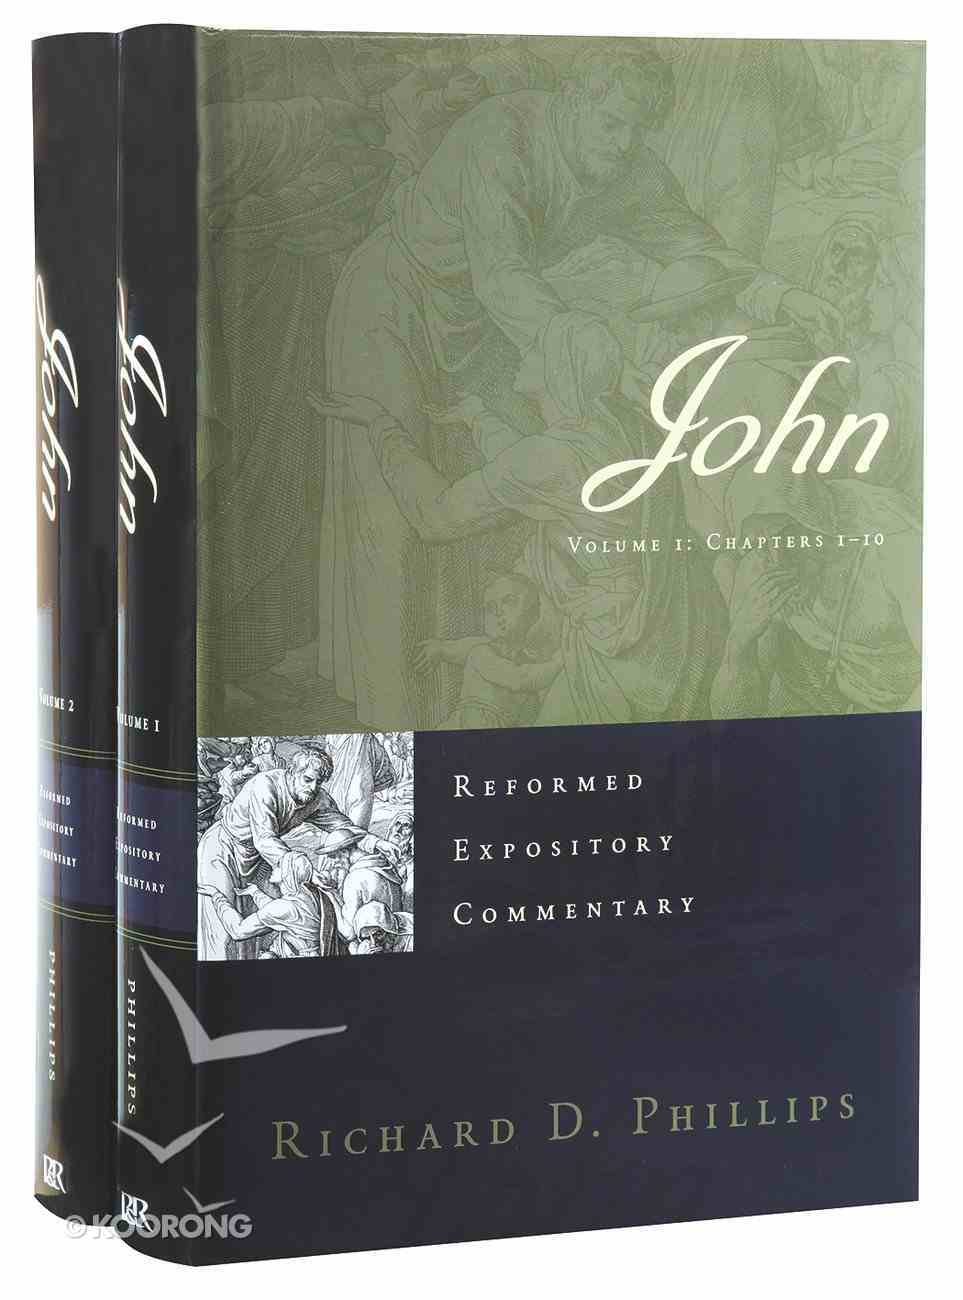 John (2 Vols) (Volume 1: Chapters 1-10) (Reformed Expository Commentary Series) Hardback